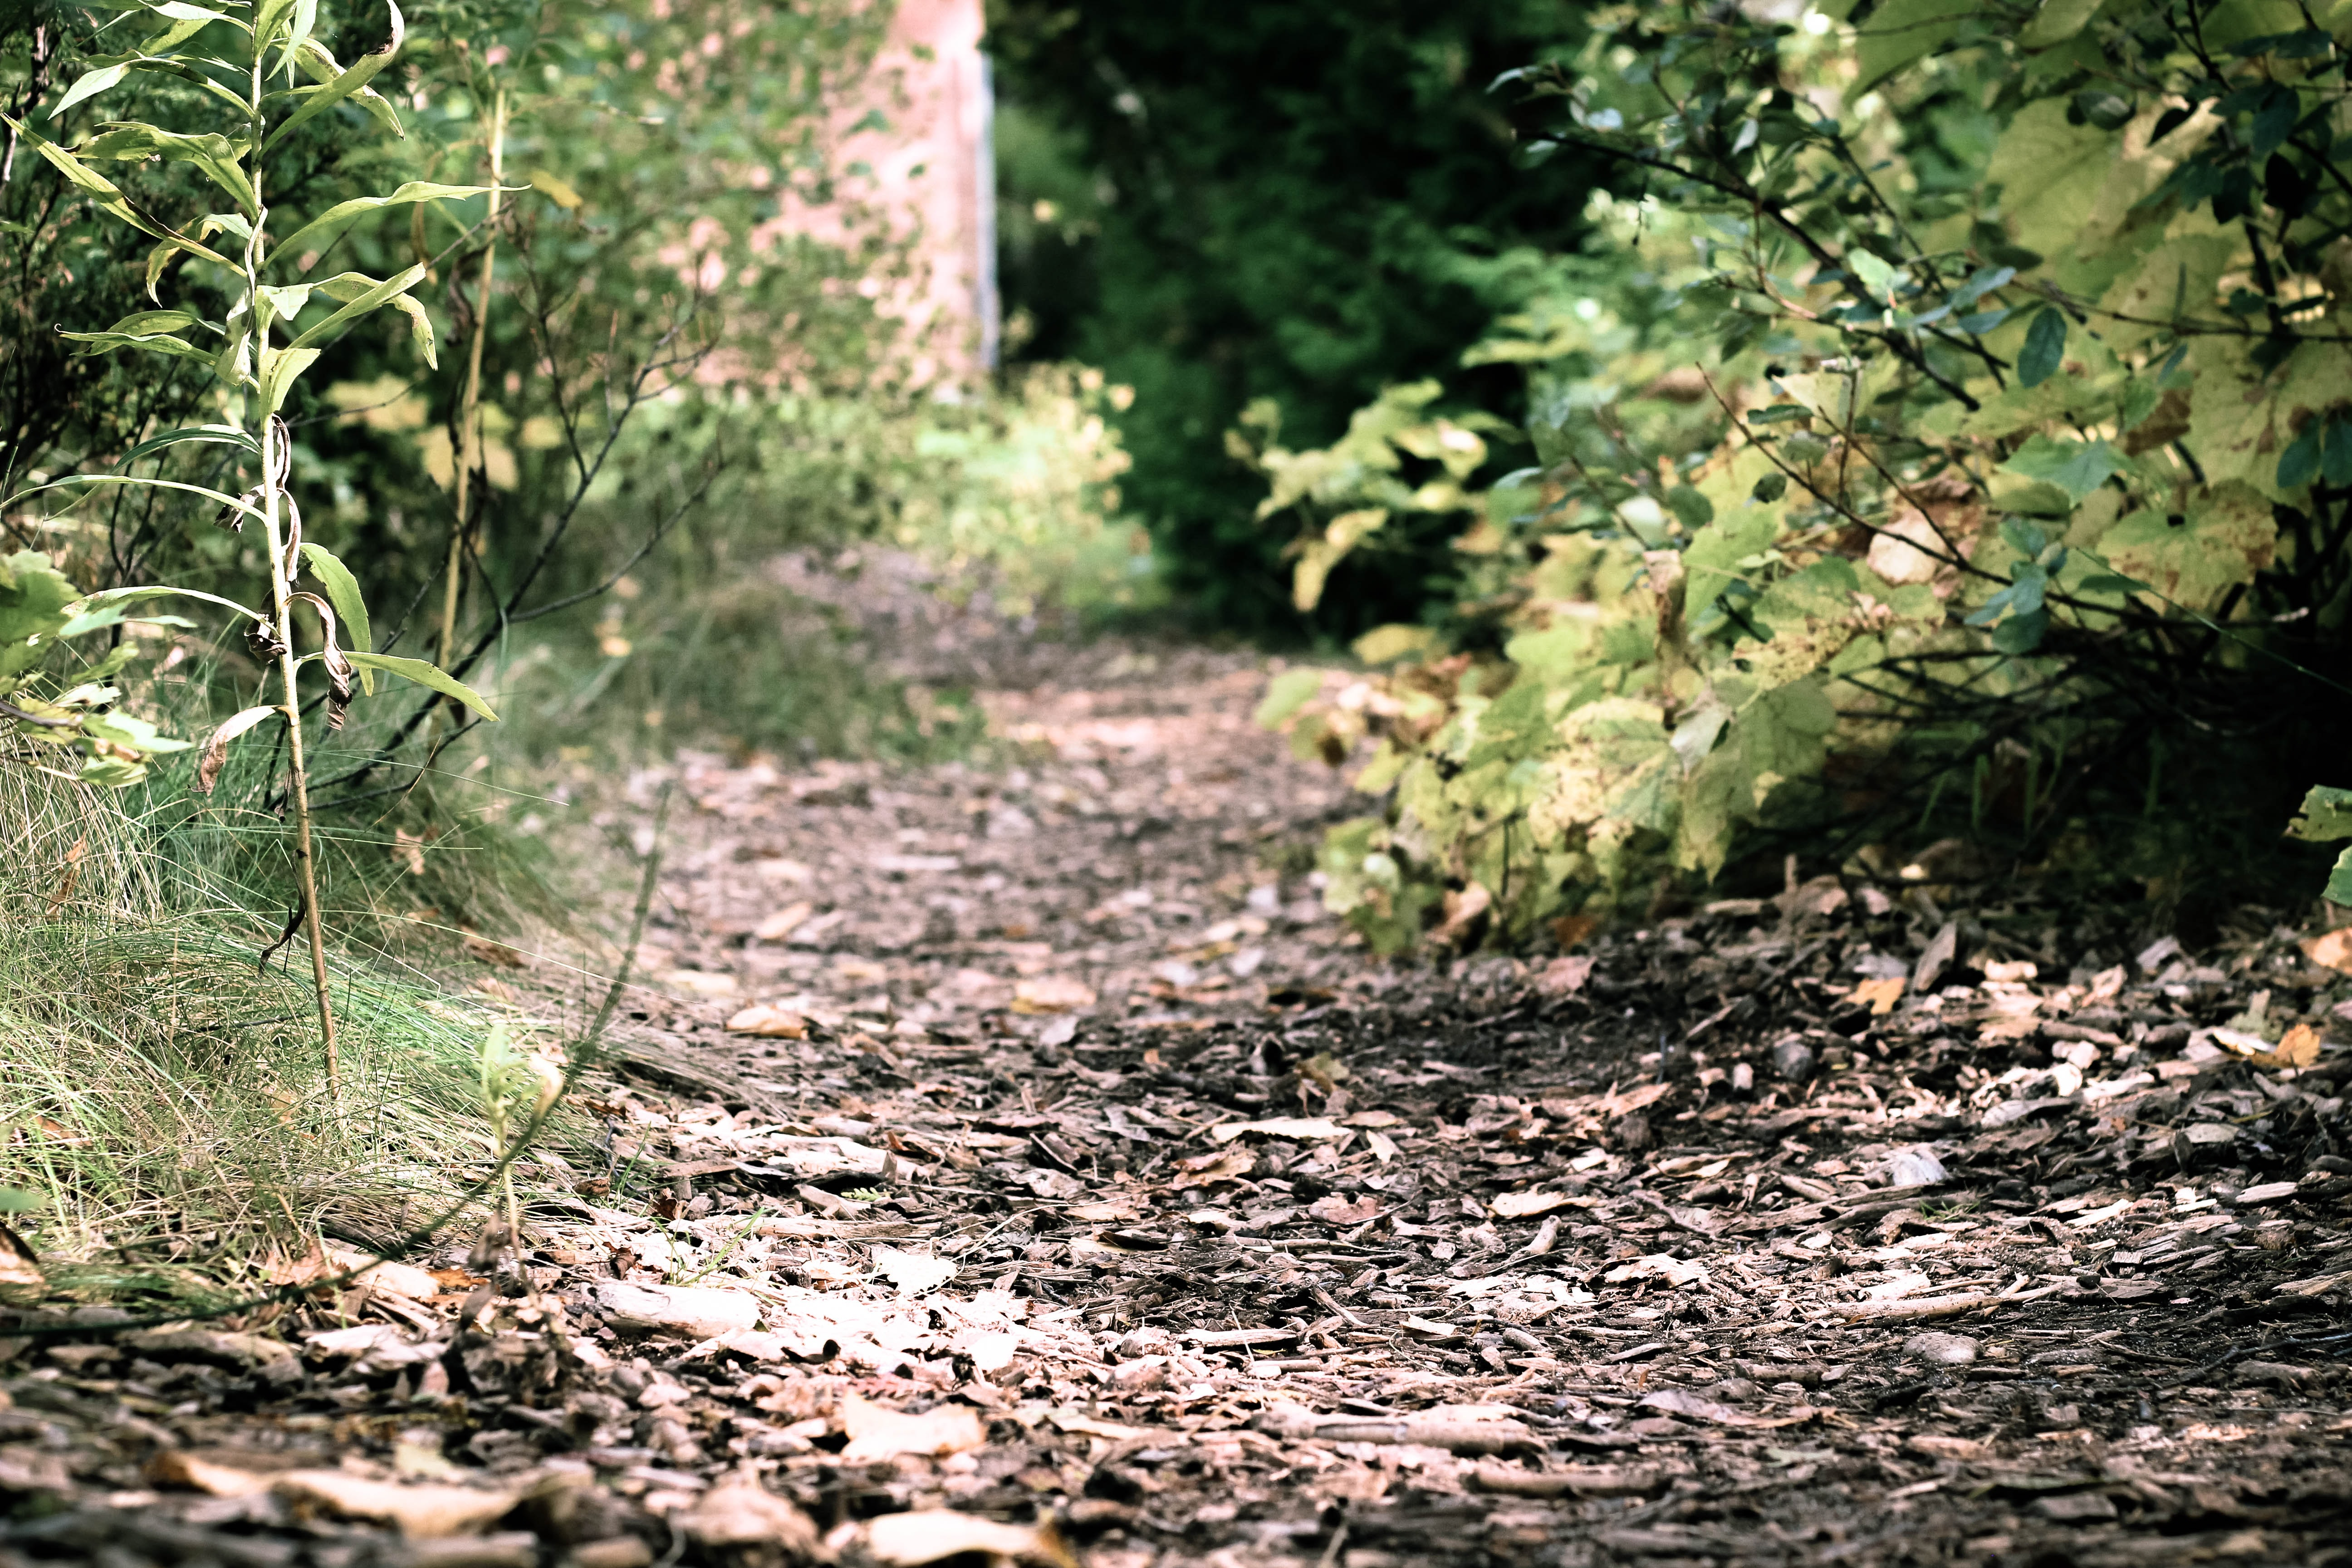 A low shot of a leaf-covered path between green bushes